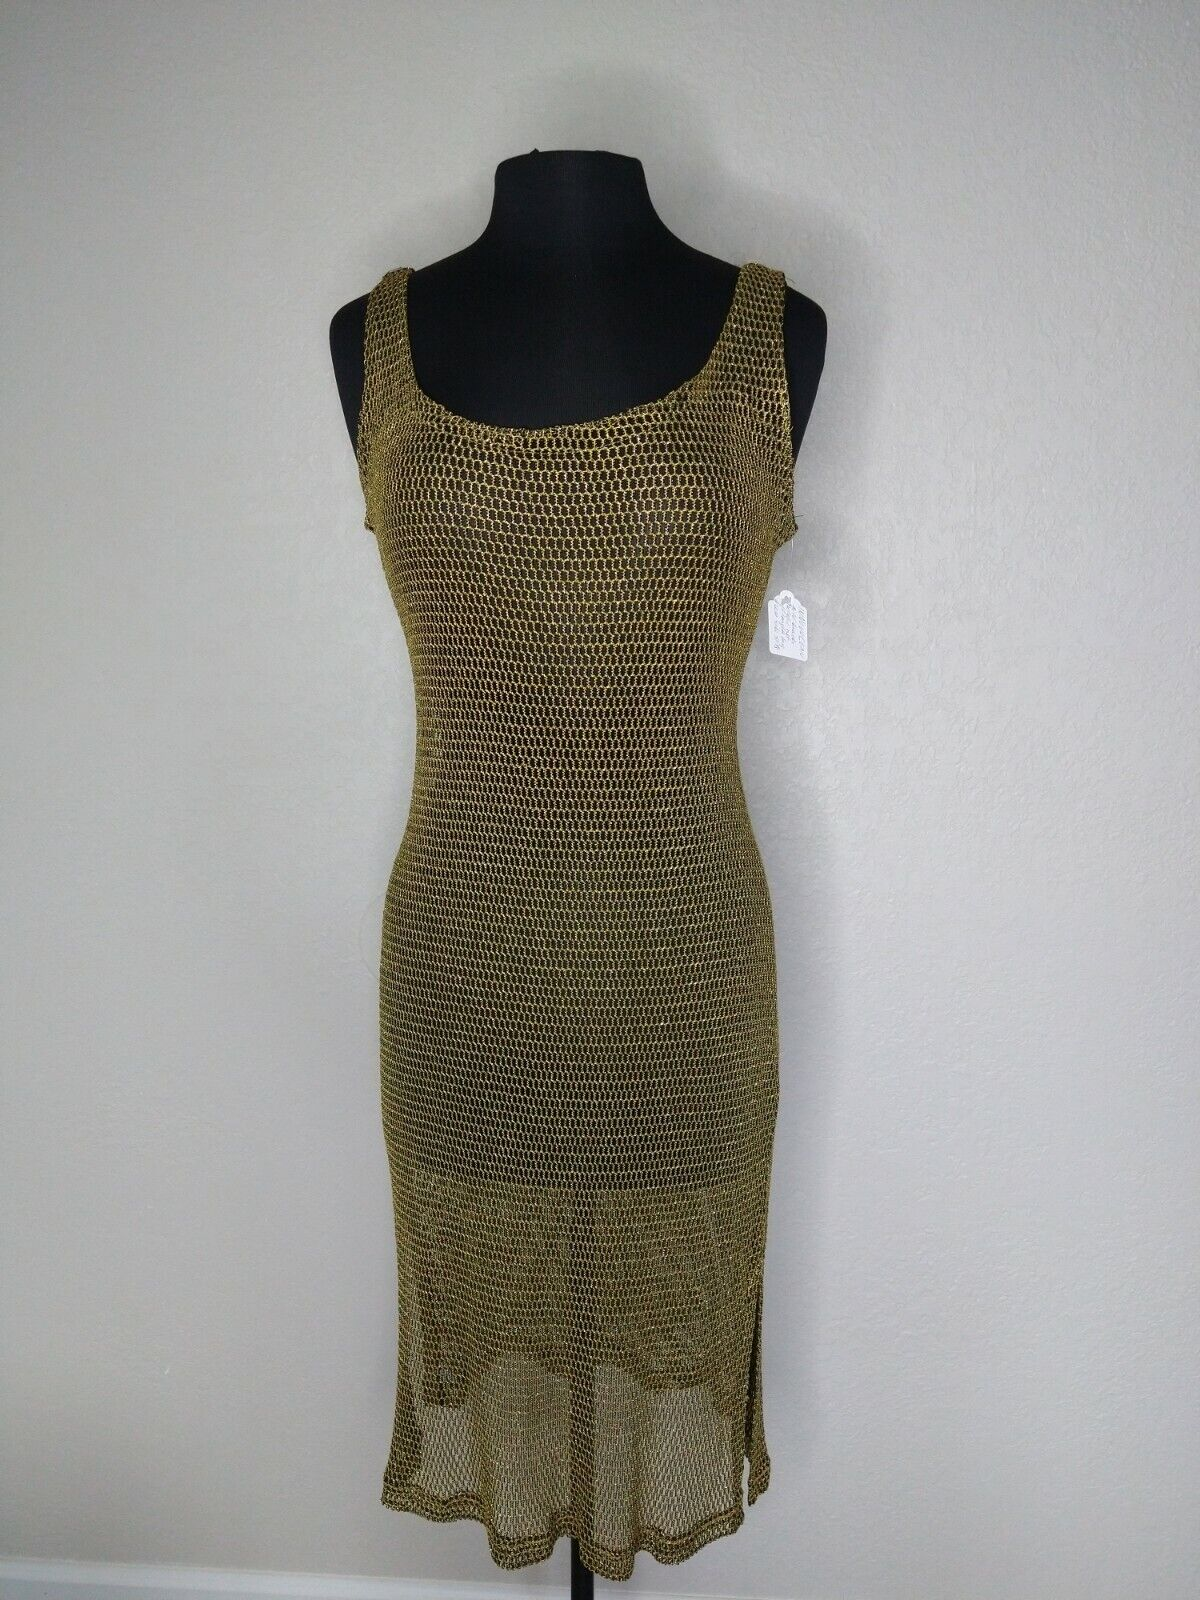 ❤️ Lame Gold Sheer Net Dress Cover Up Layer Avantgarde 80s Disco Glam Rock